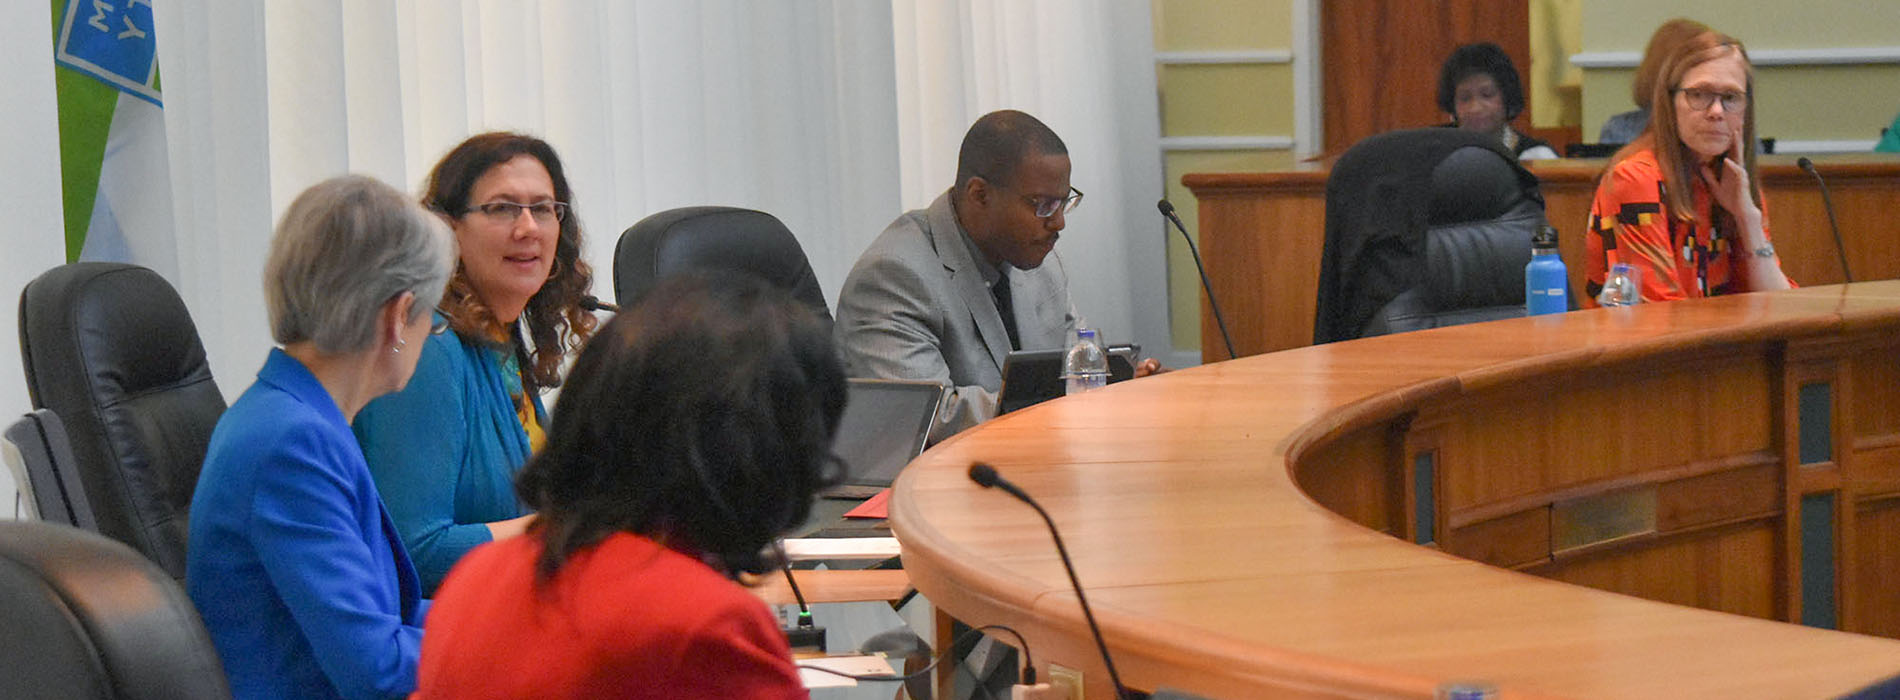 Durham BOCC members discuss an item during the April 22, 2019 Regular Session